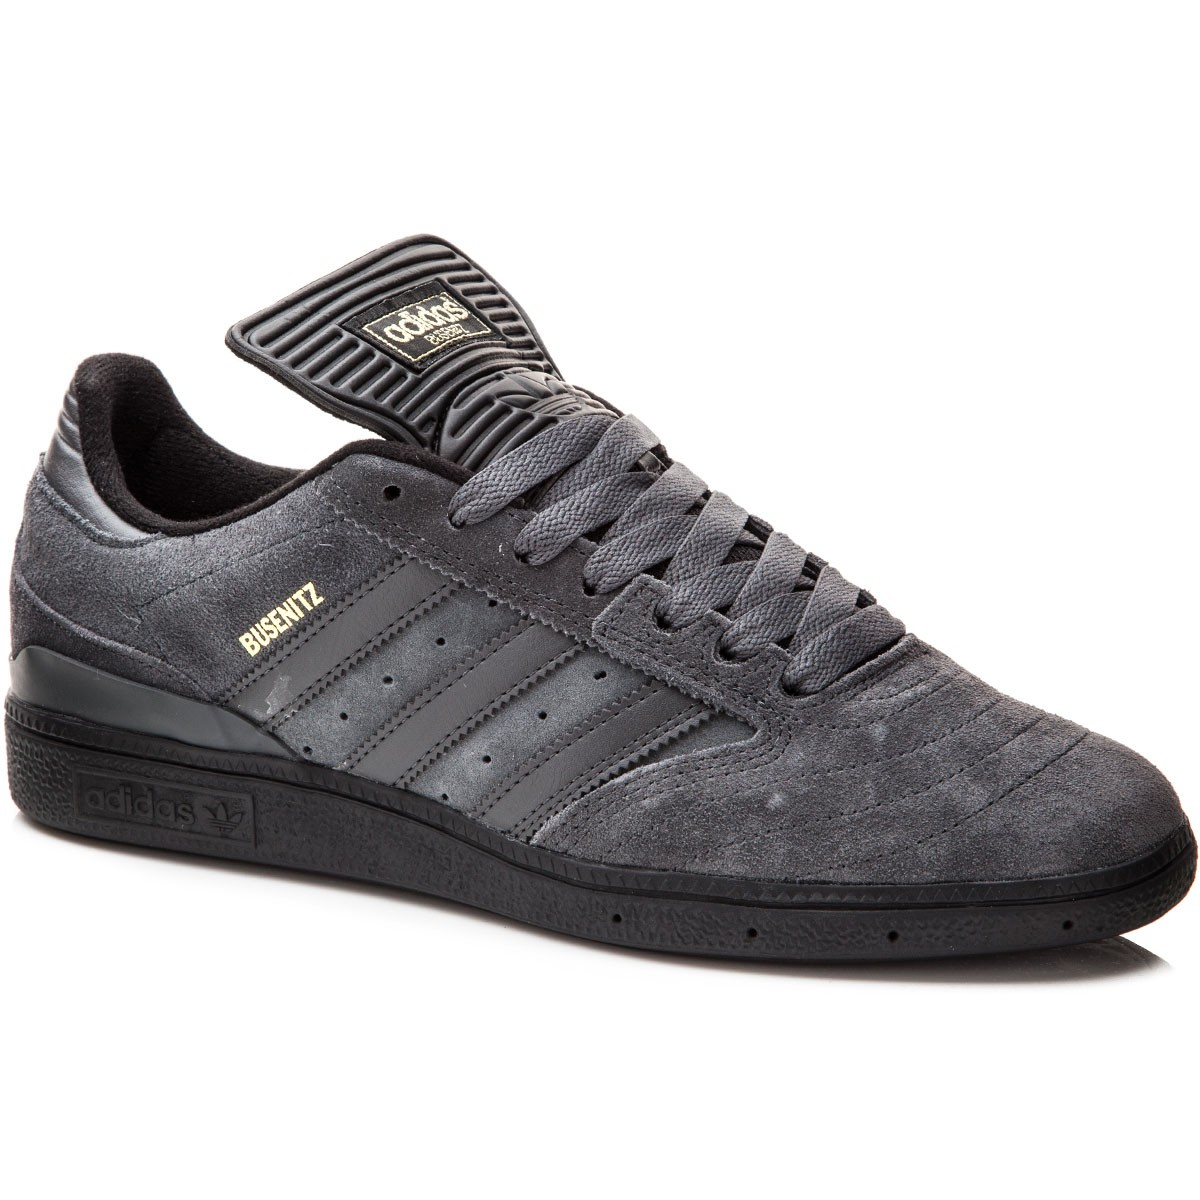 adidas busenitz cheap